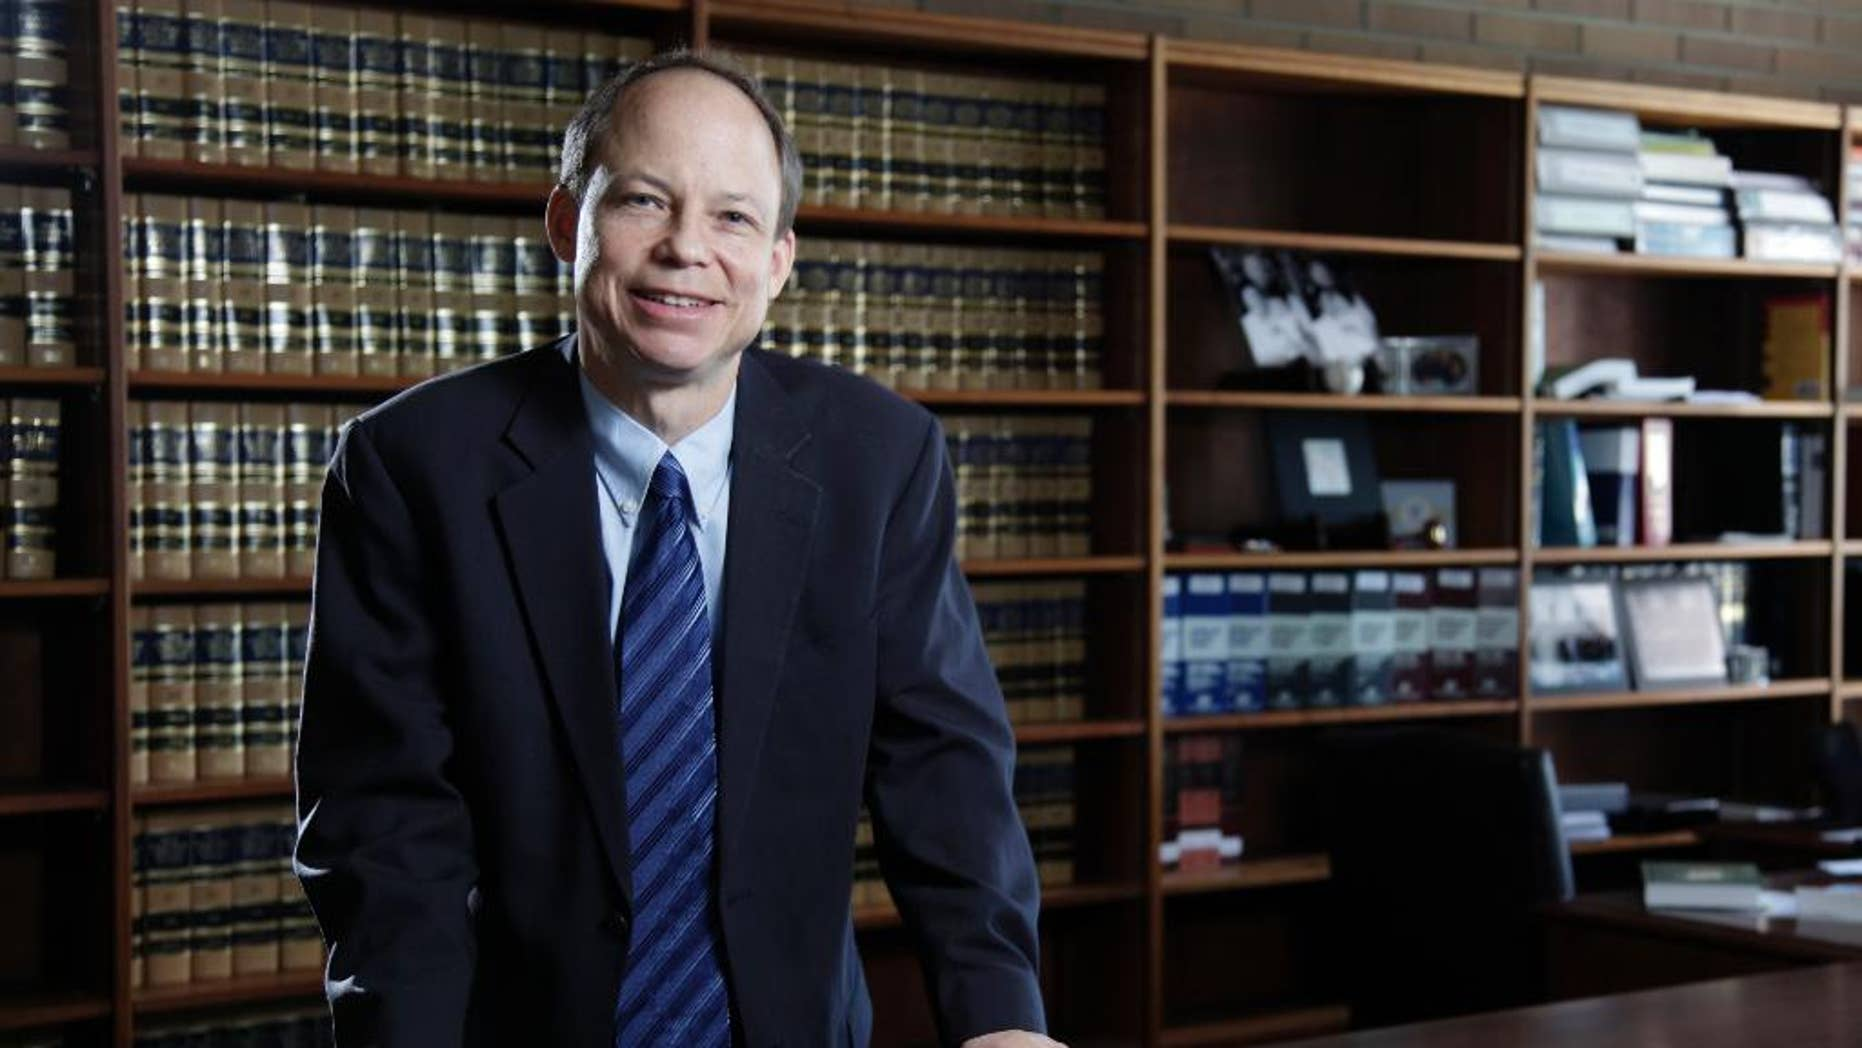 FILE - This June 27, 2011 file photo shows Santa Clara County Superior Court Judge Aaron Persky, who drew criticism for sentencing former Stanford University swimmer Brock Turner to only six months in jail for sexually assaulting an unconscious woman.